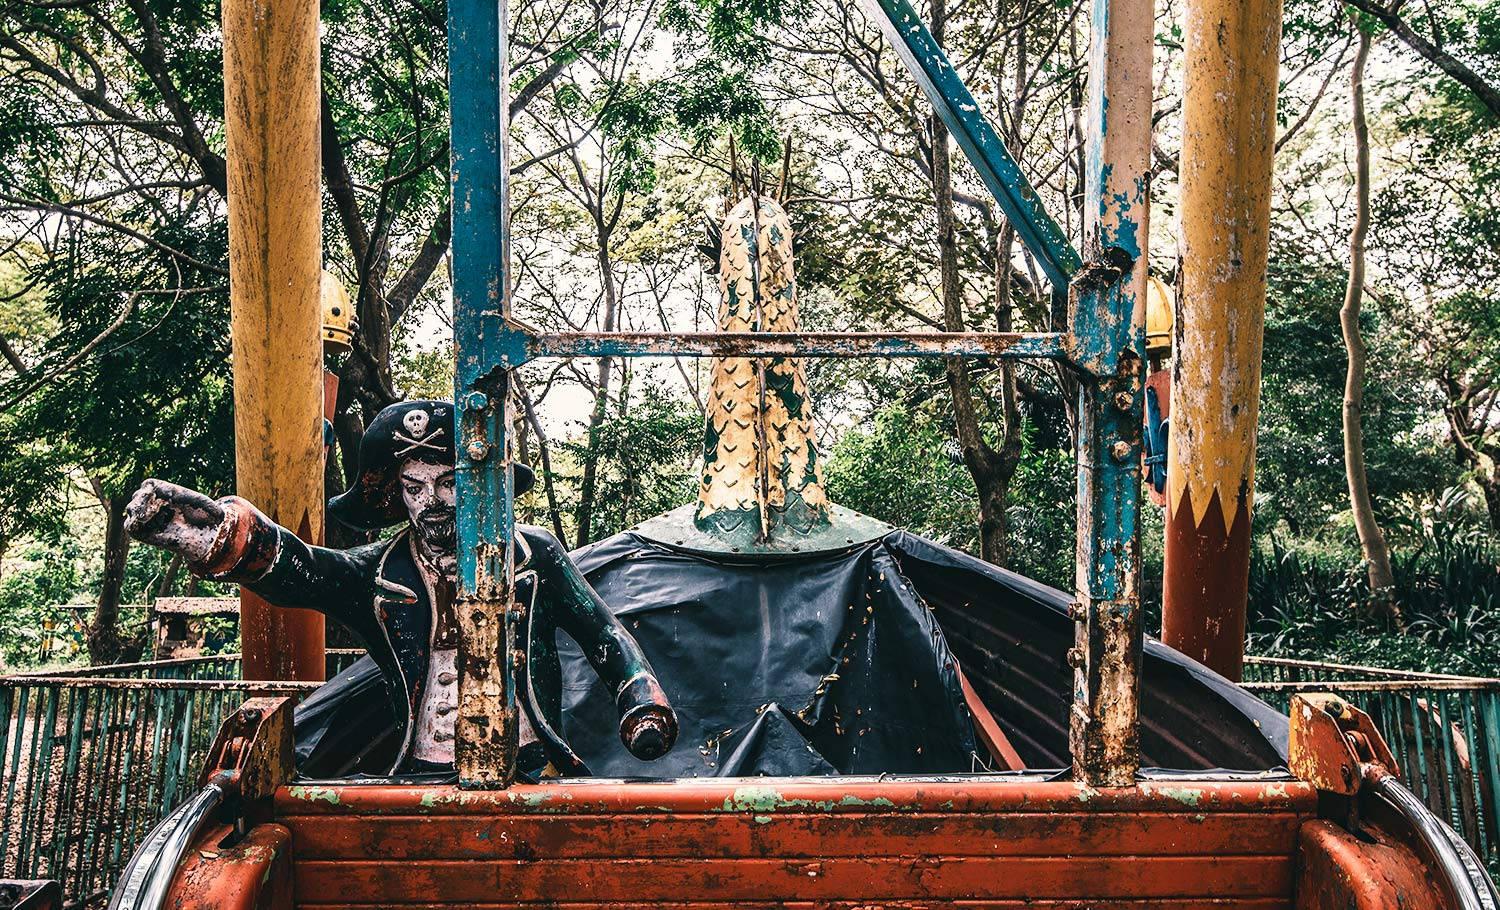 Pirate guarding a Viking Ship (go figure) at the Abandoned Theme Park in Yangon.